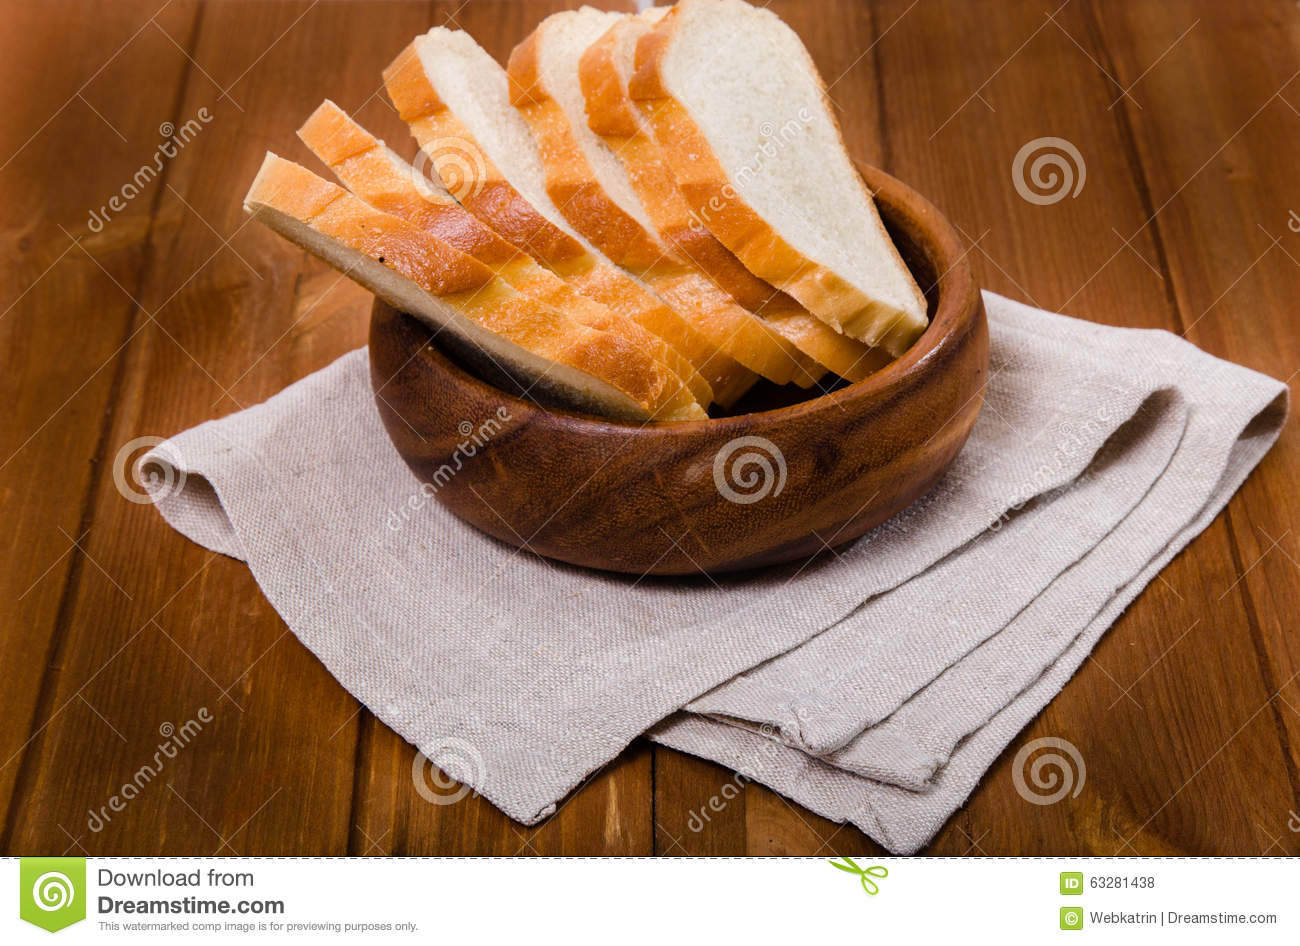 The cut bread costs on a linen napkin in a wooden bowl